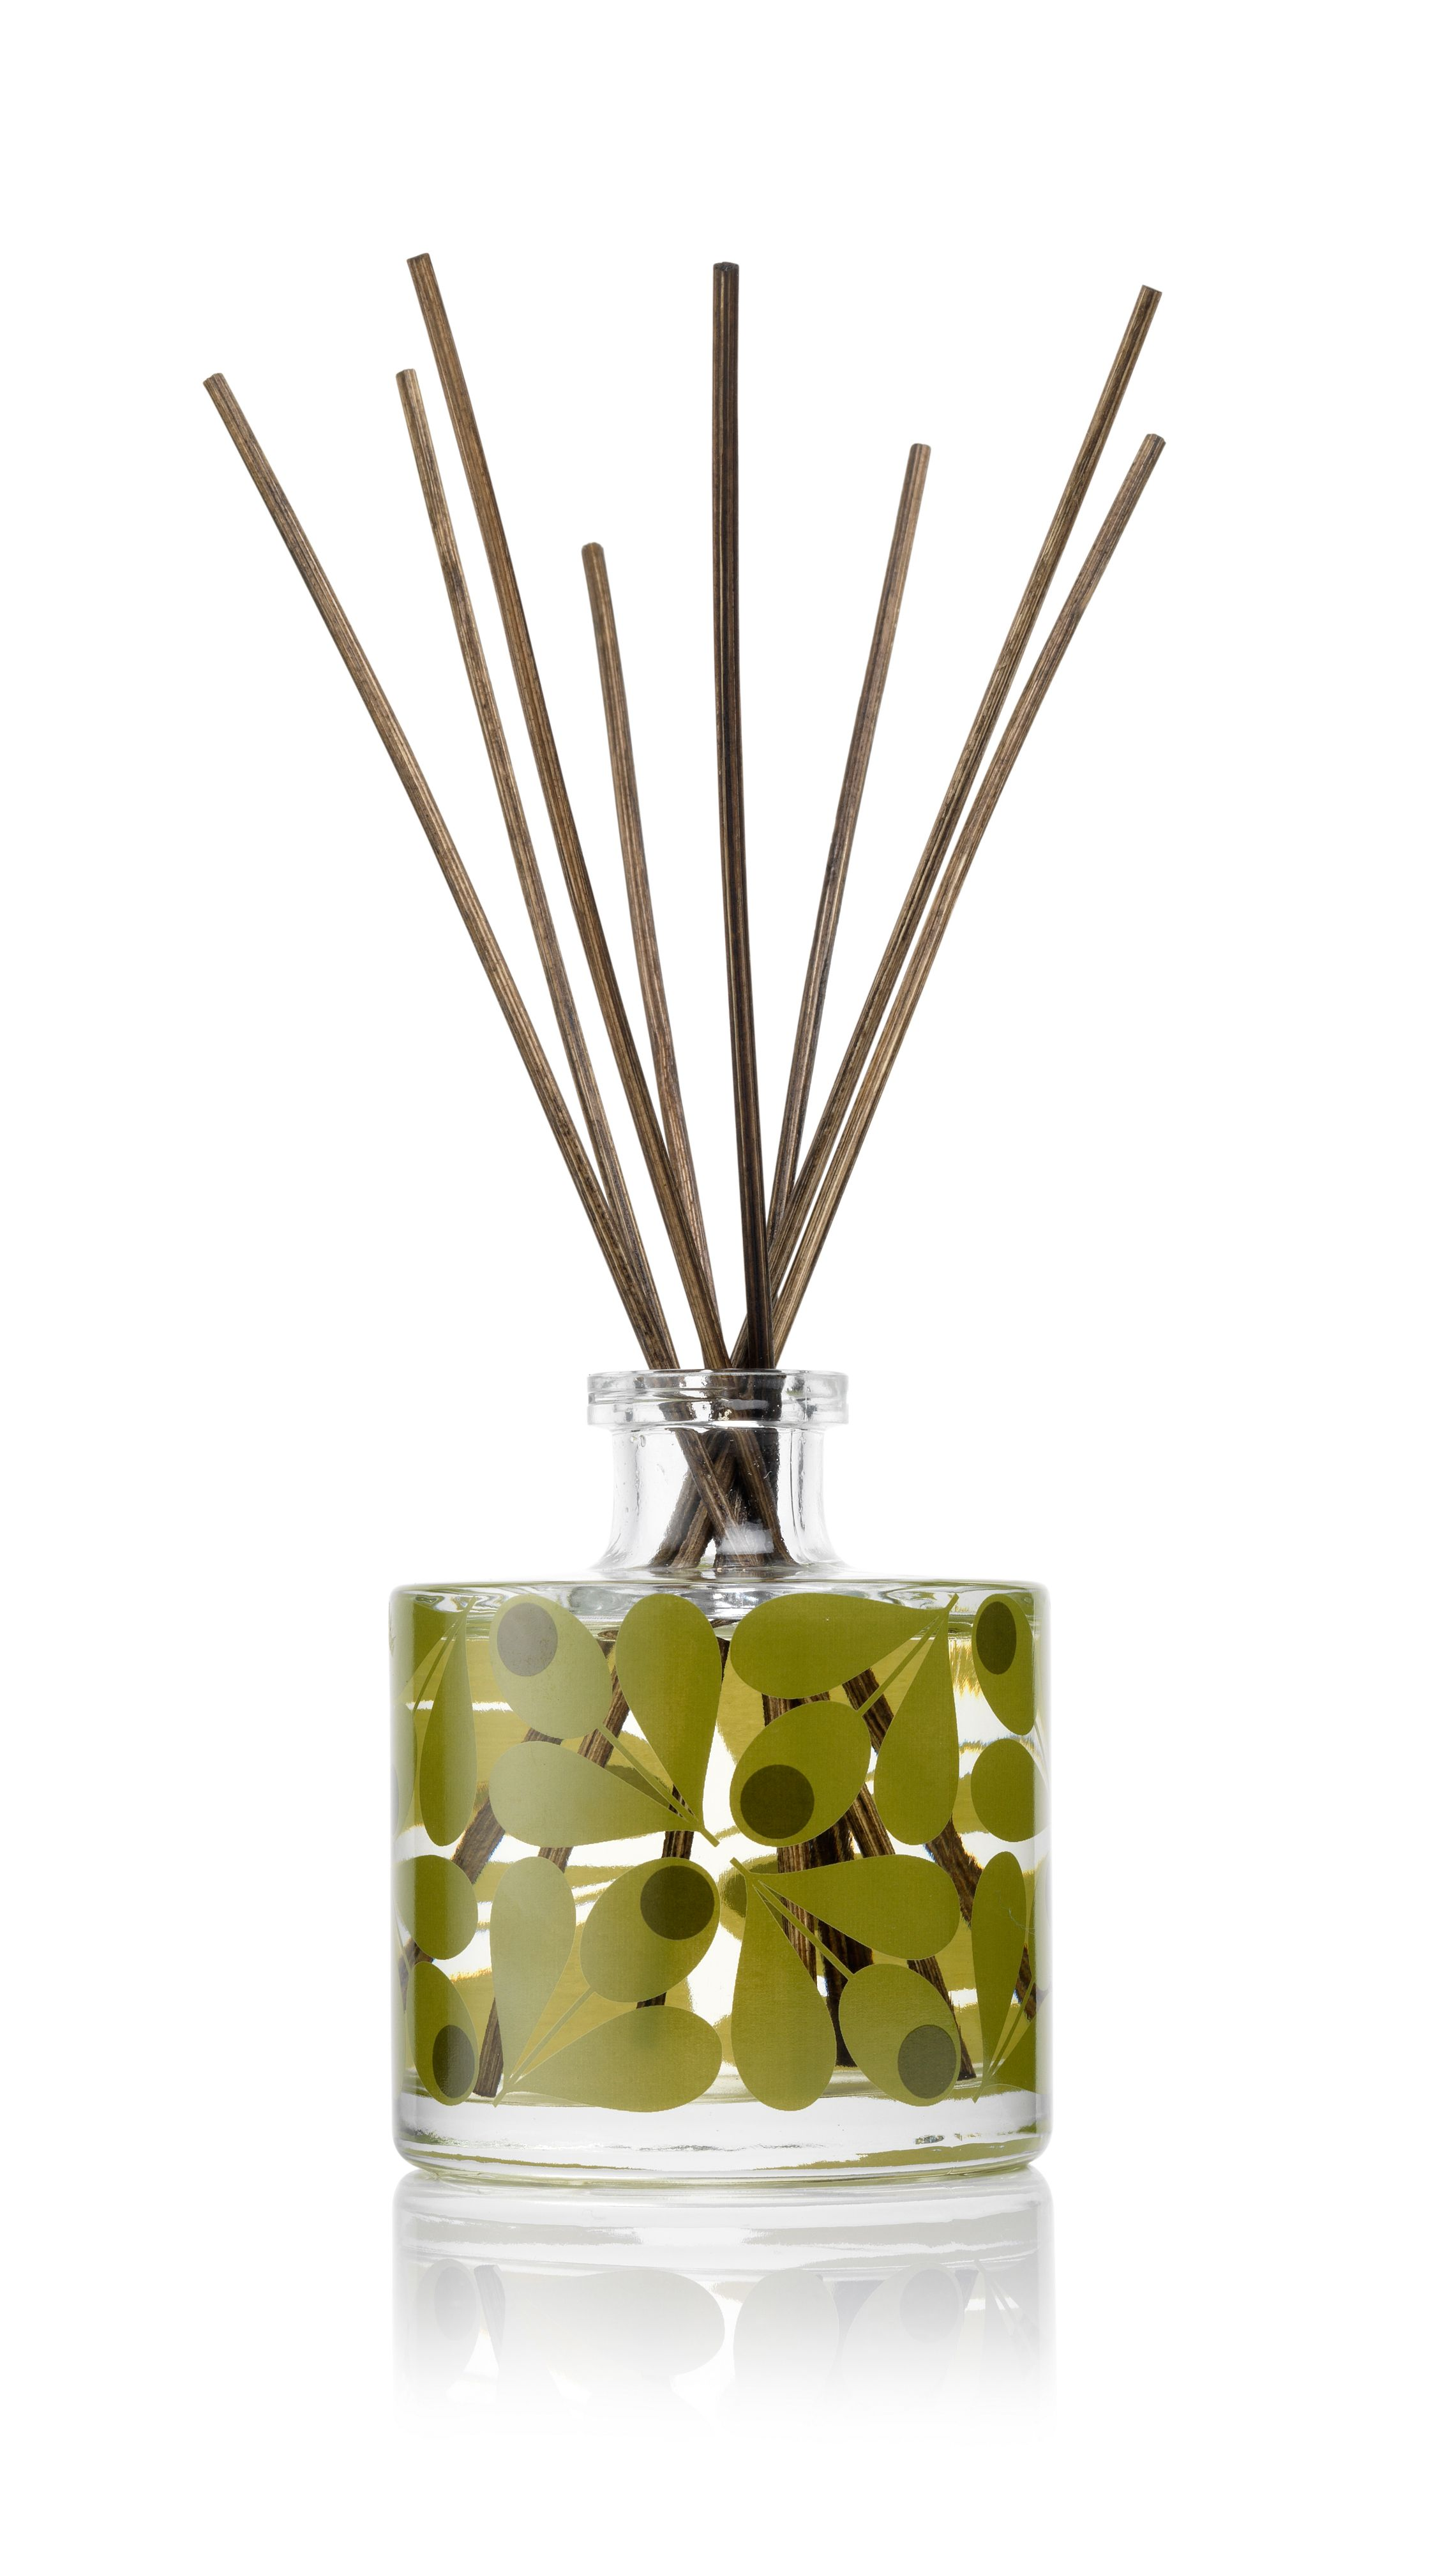 Image of Orla Kiely Fig Tree Diffuser 200ml